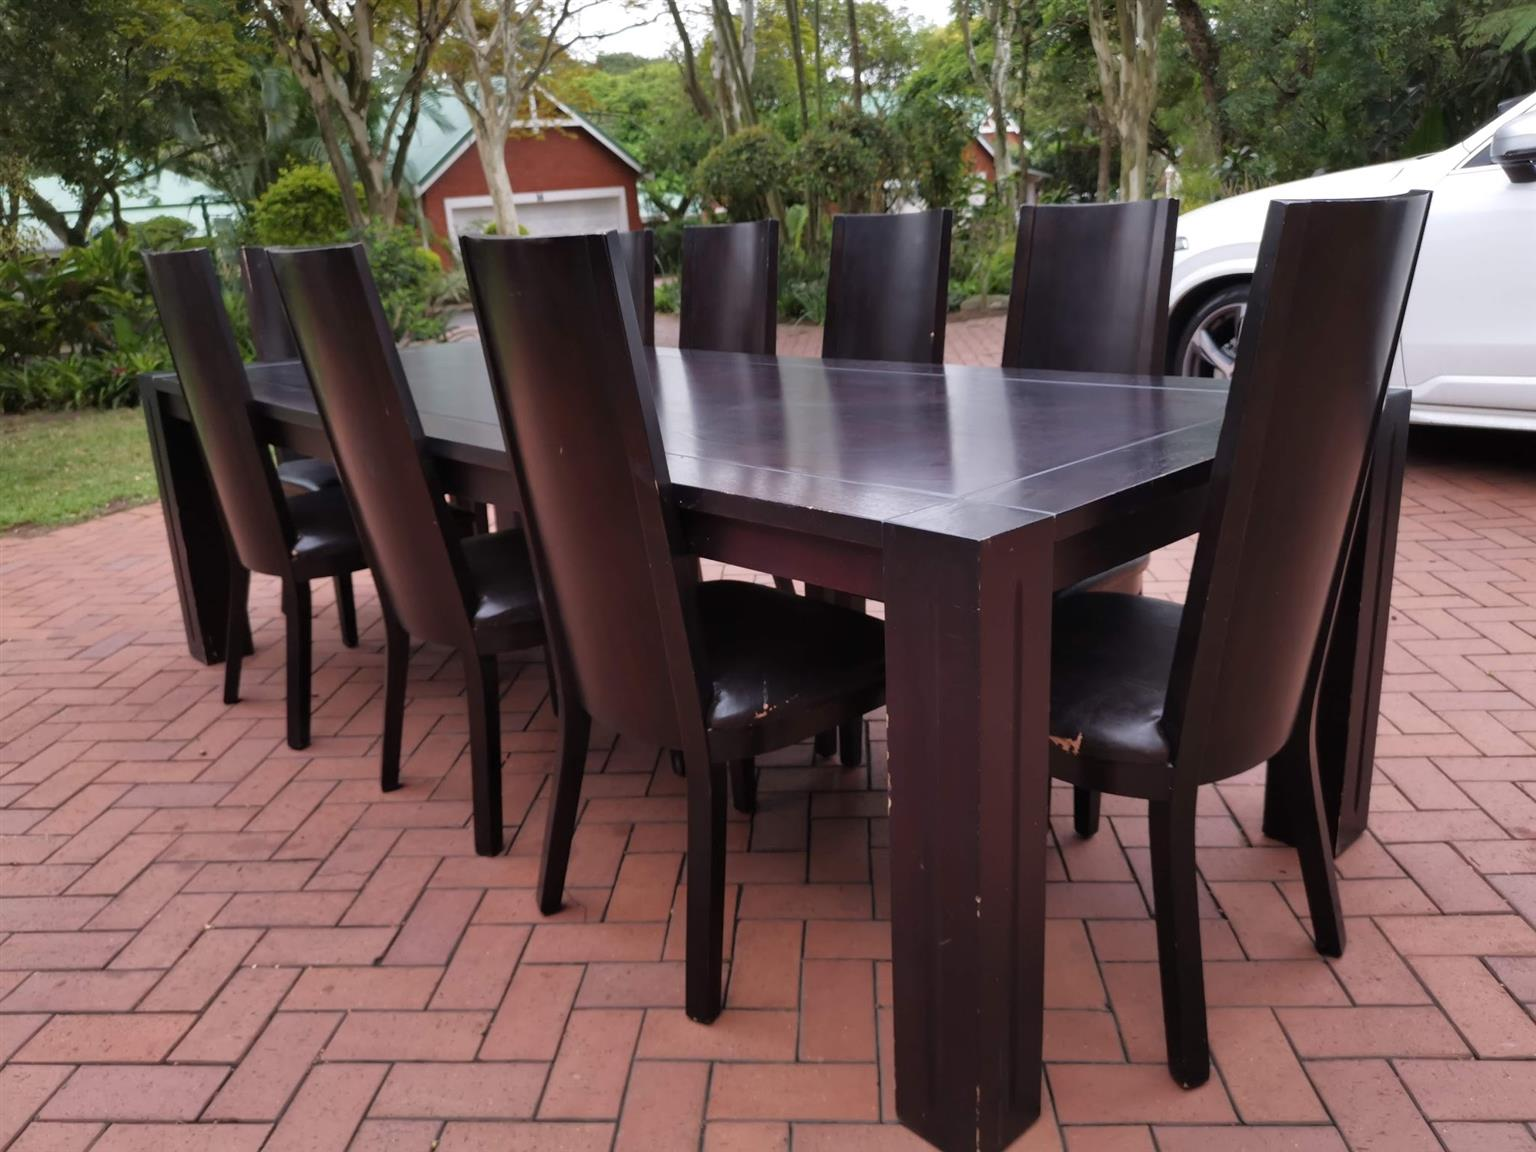 10 Seater Dining Room Table Junk Mail